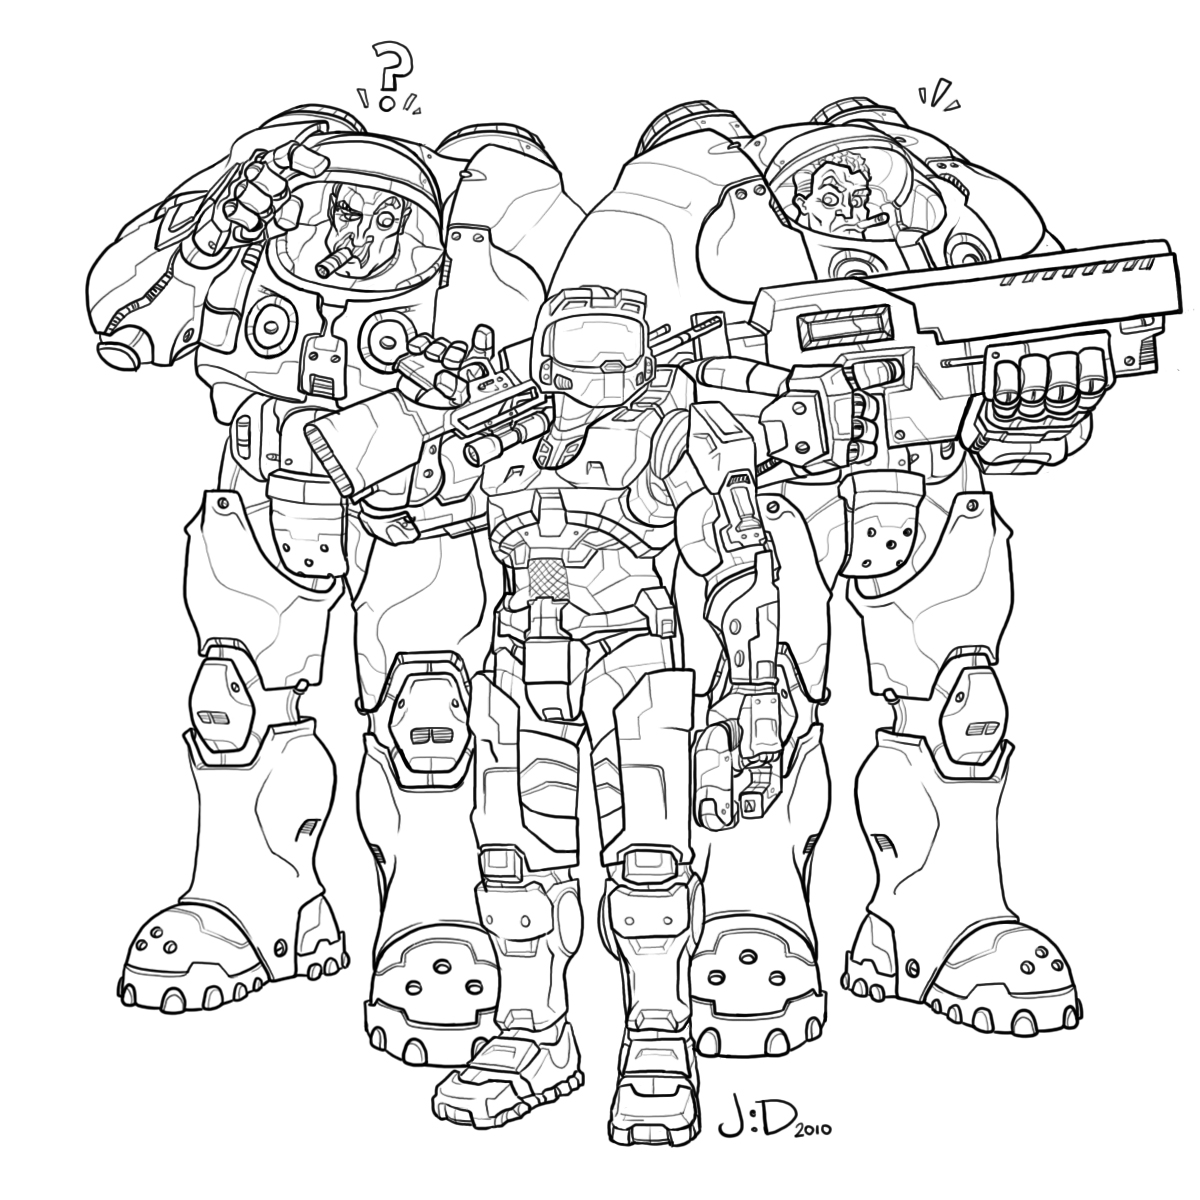 The REAL space marine.